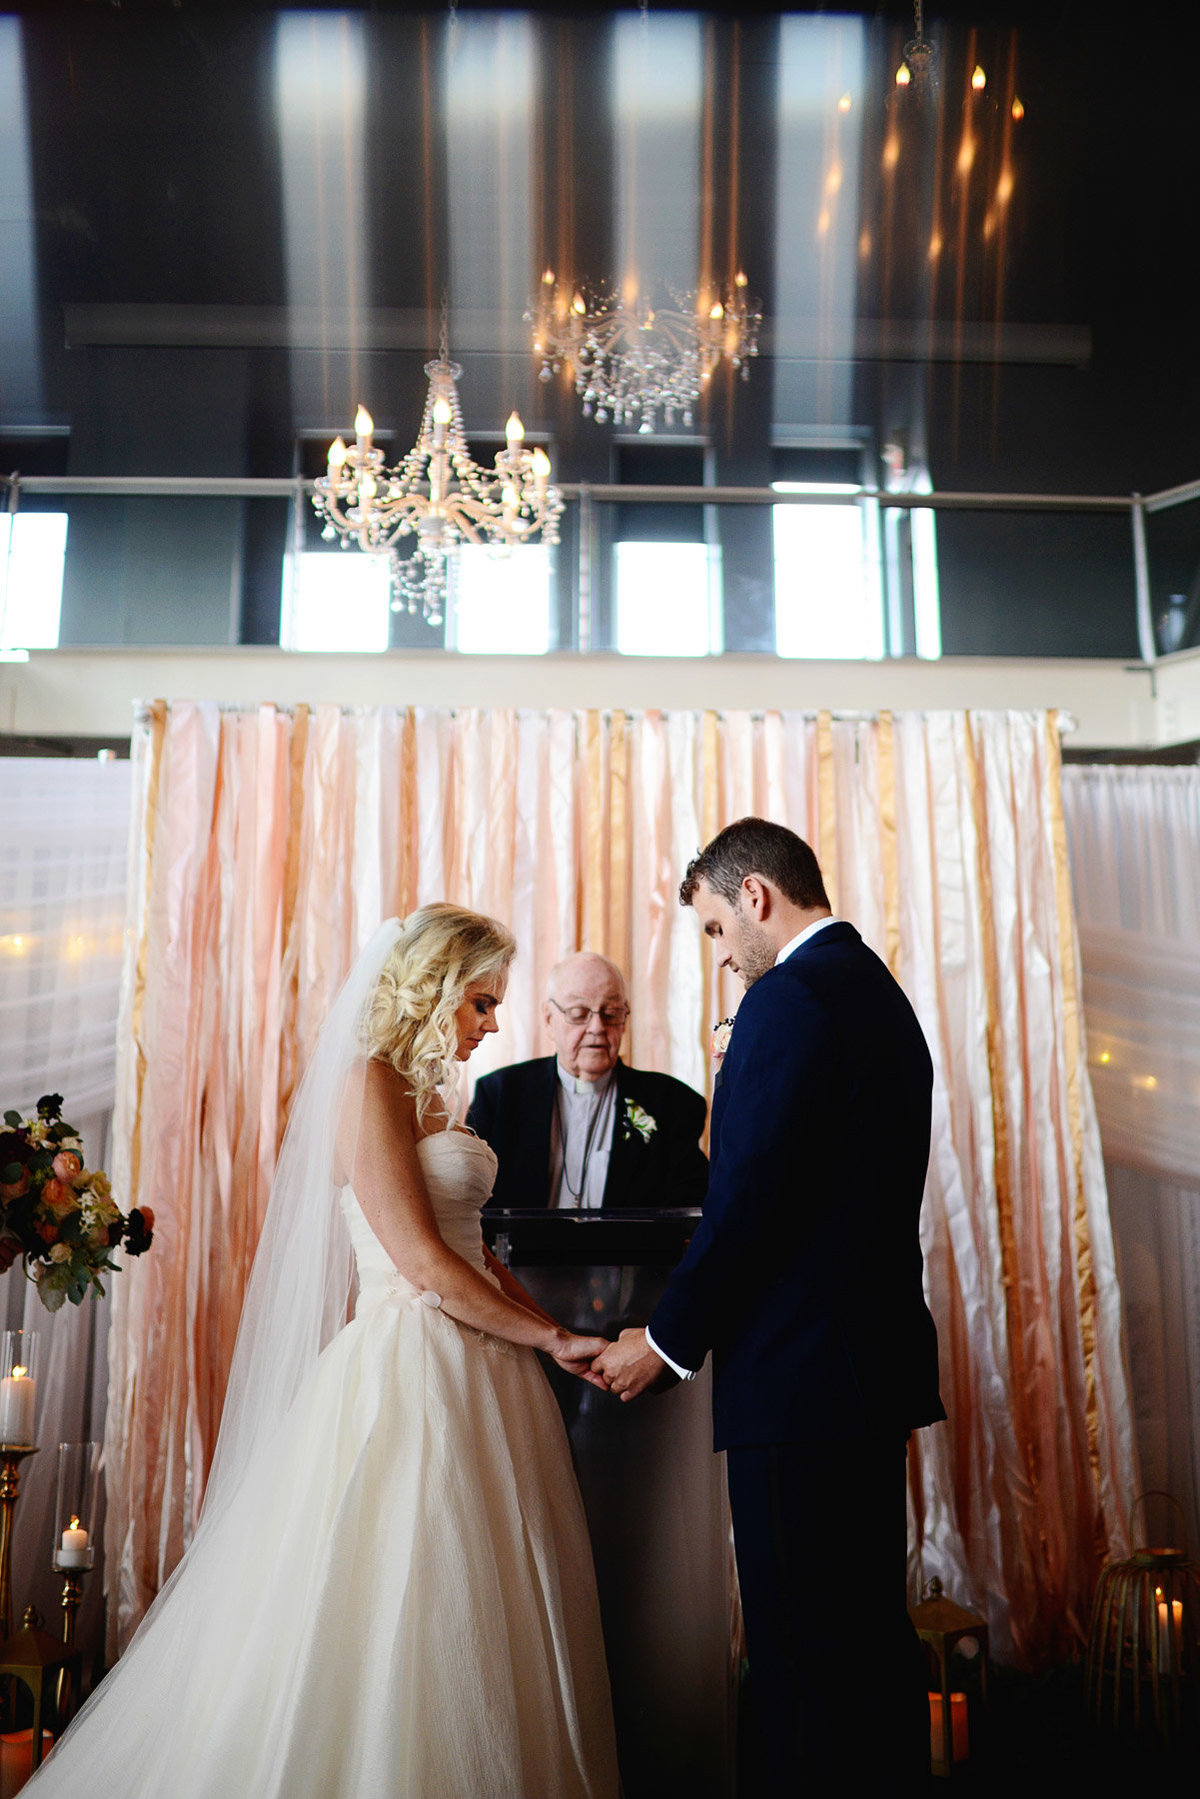 muse event center wedding photos minneapolis wedding photographer bryan newfield photography 41